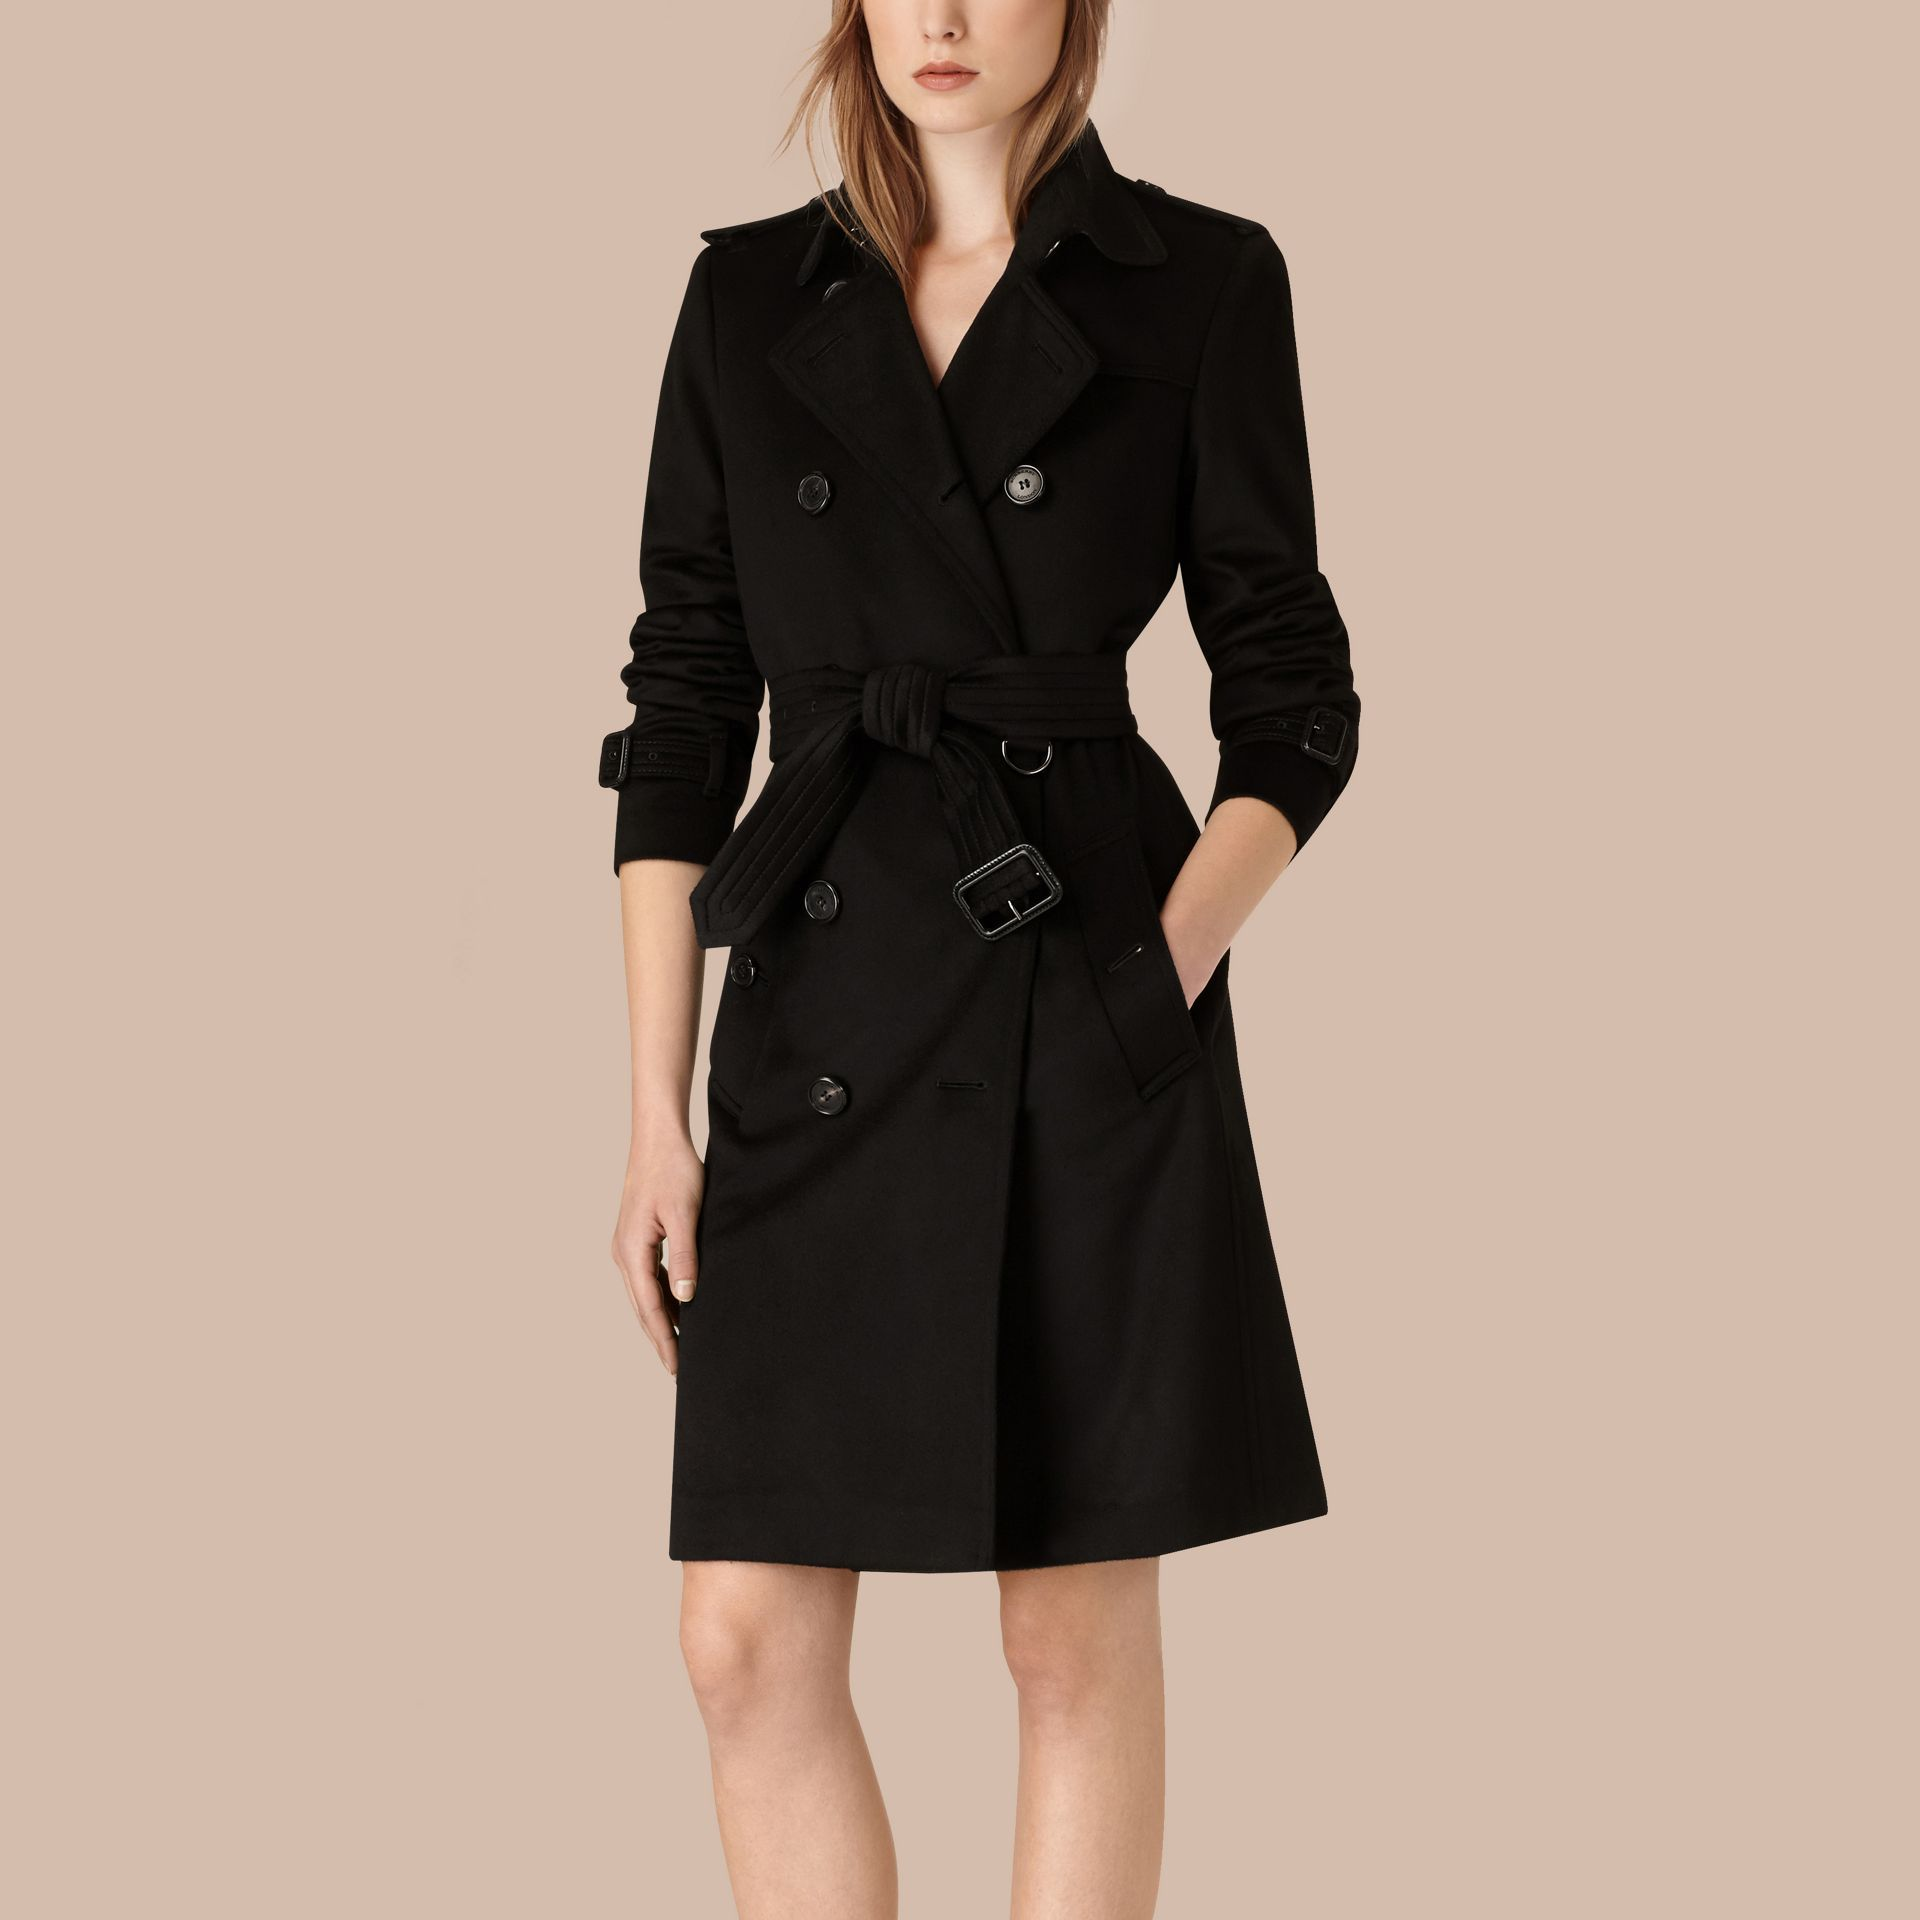 Black Kensington Fit Cashmere Trench Coat Black - gallery image 3